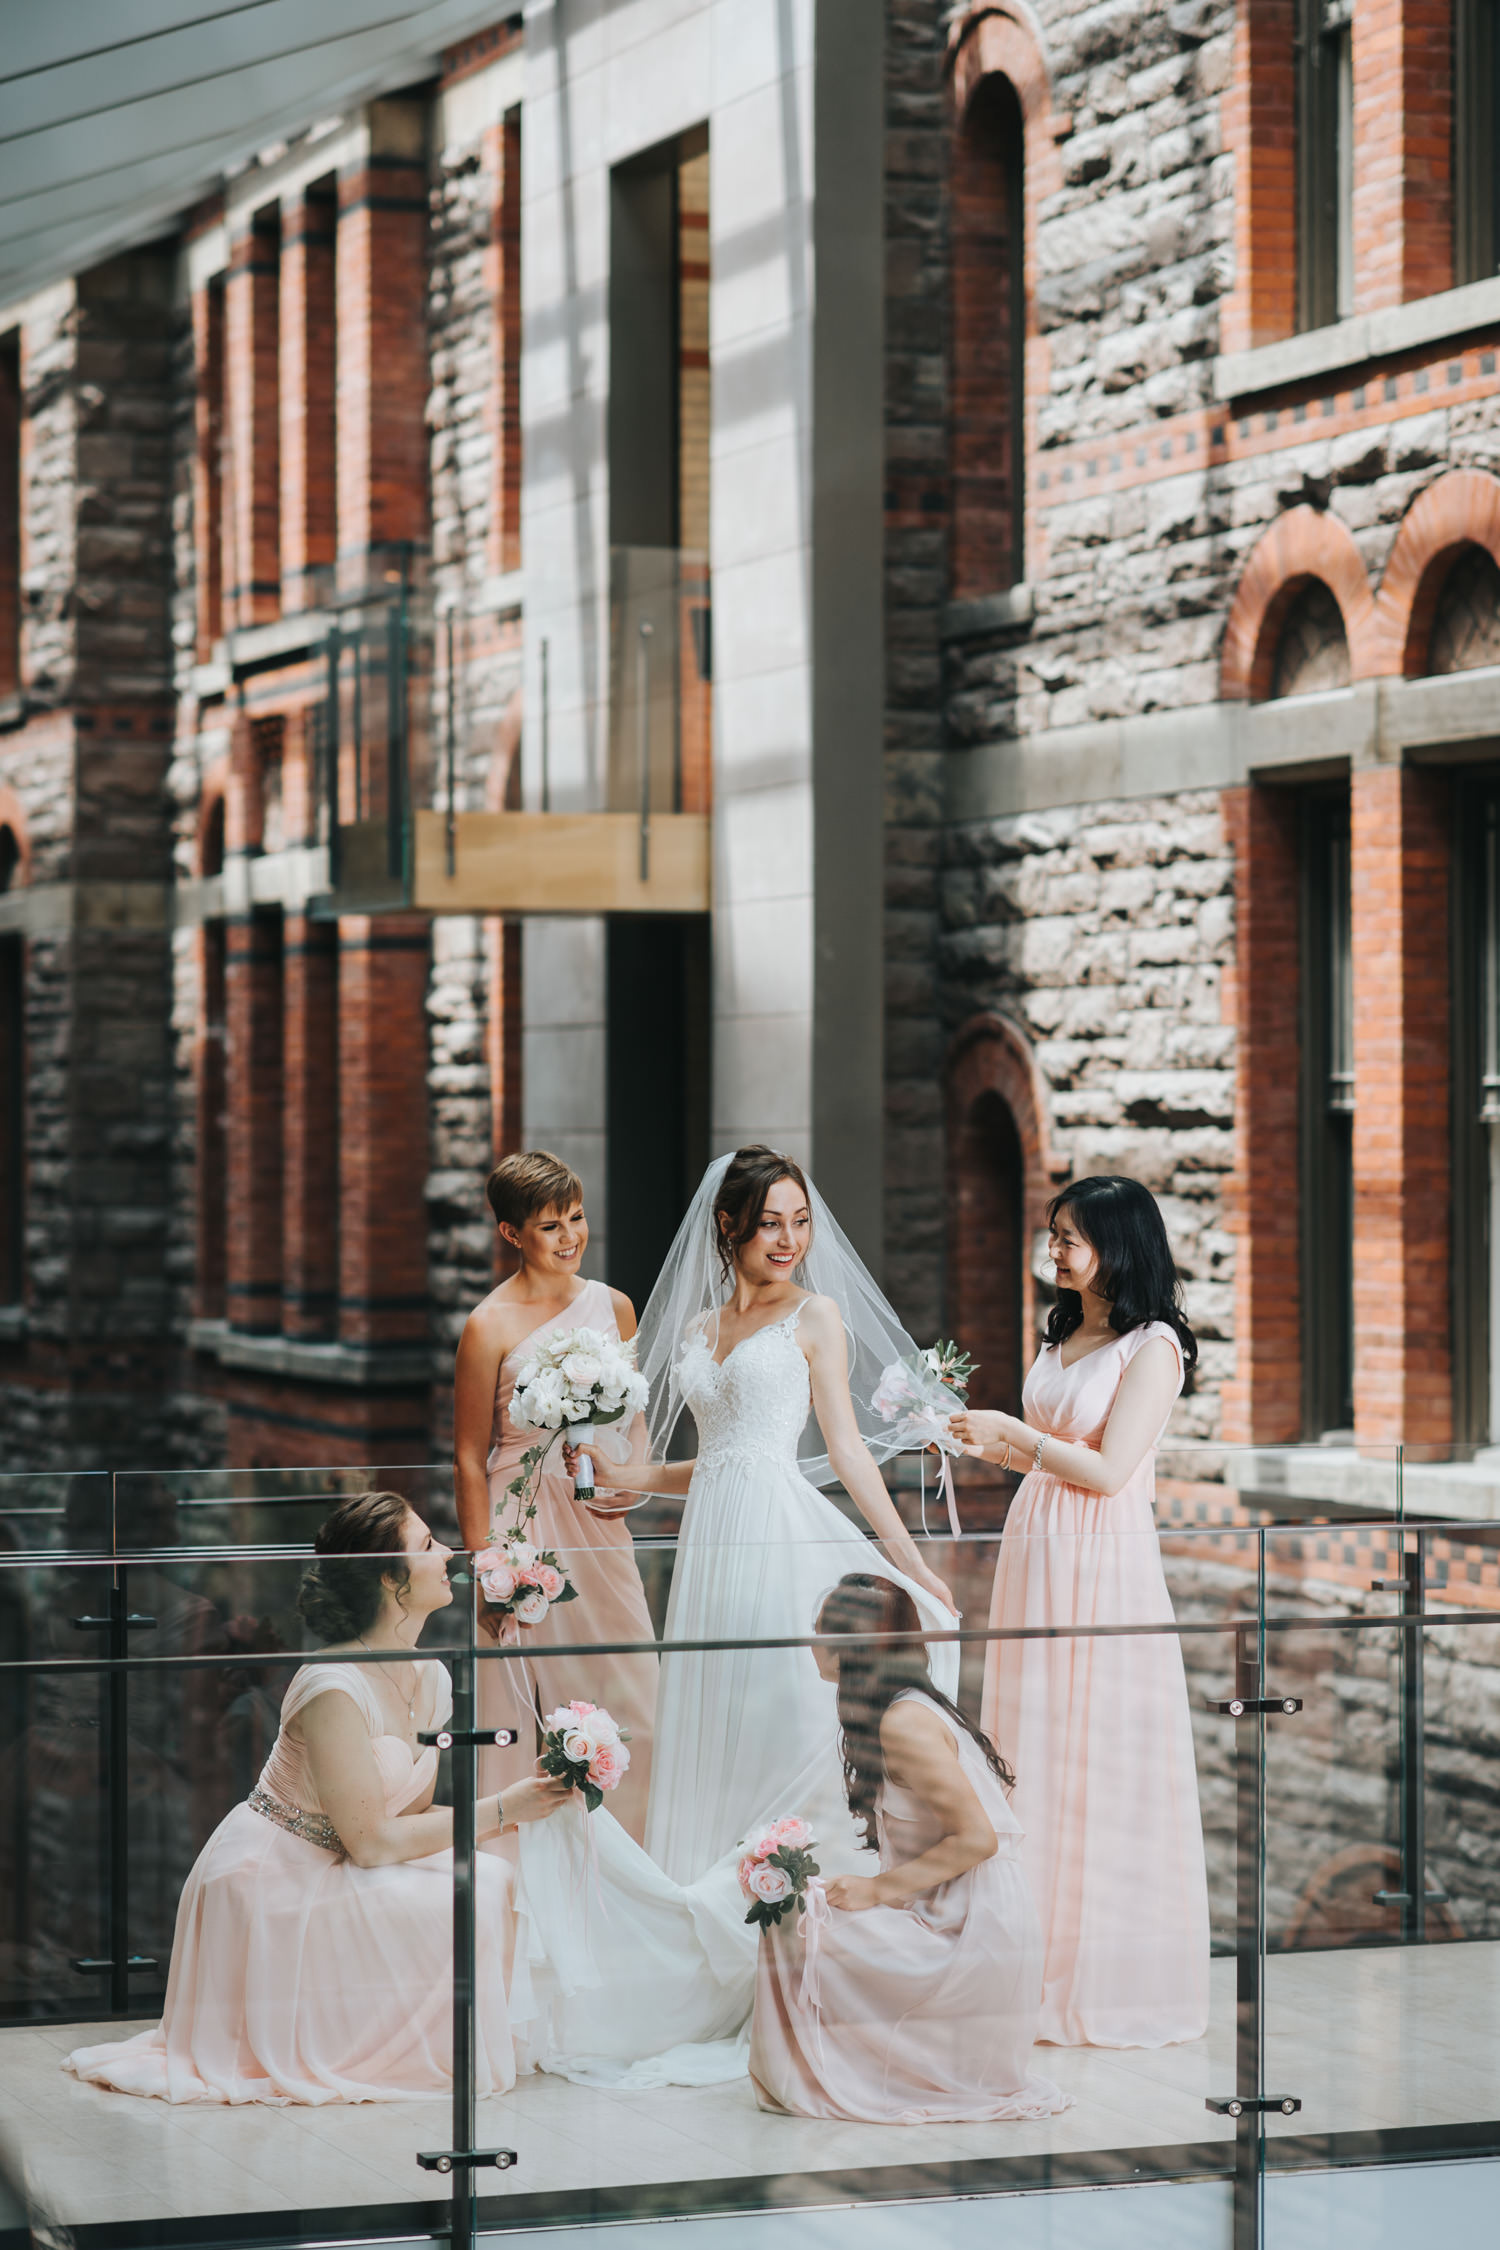 Toronto Royal Conservatory of Music Wedding Bridal Party Photo